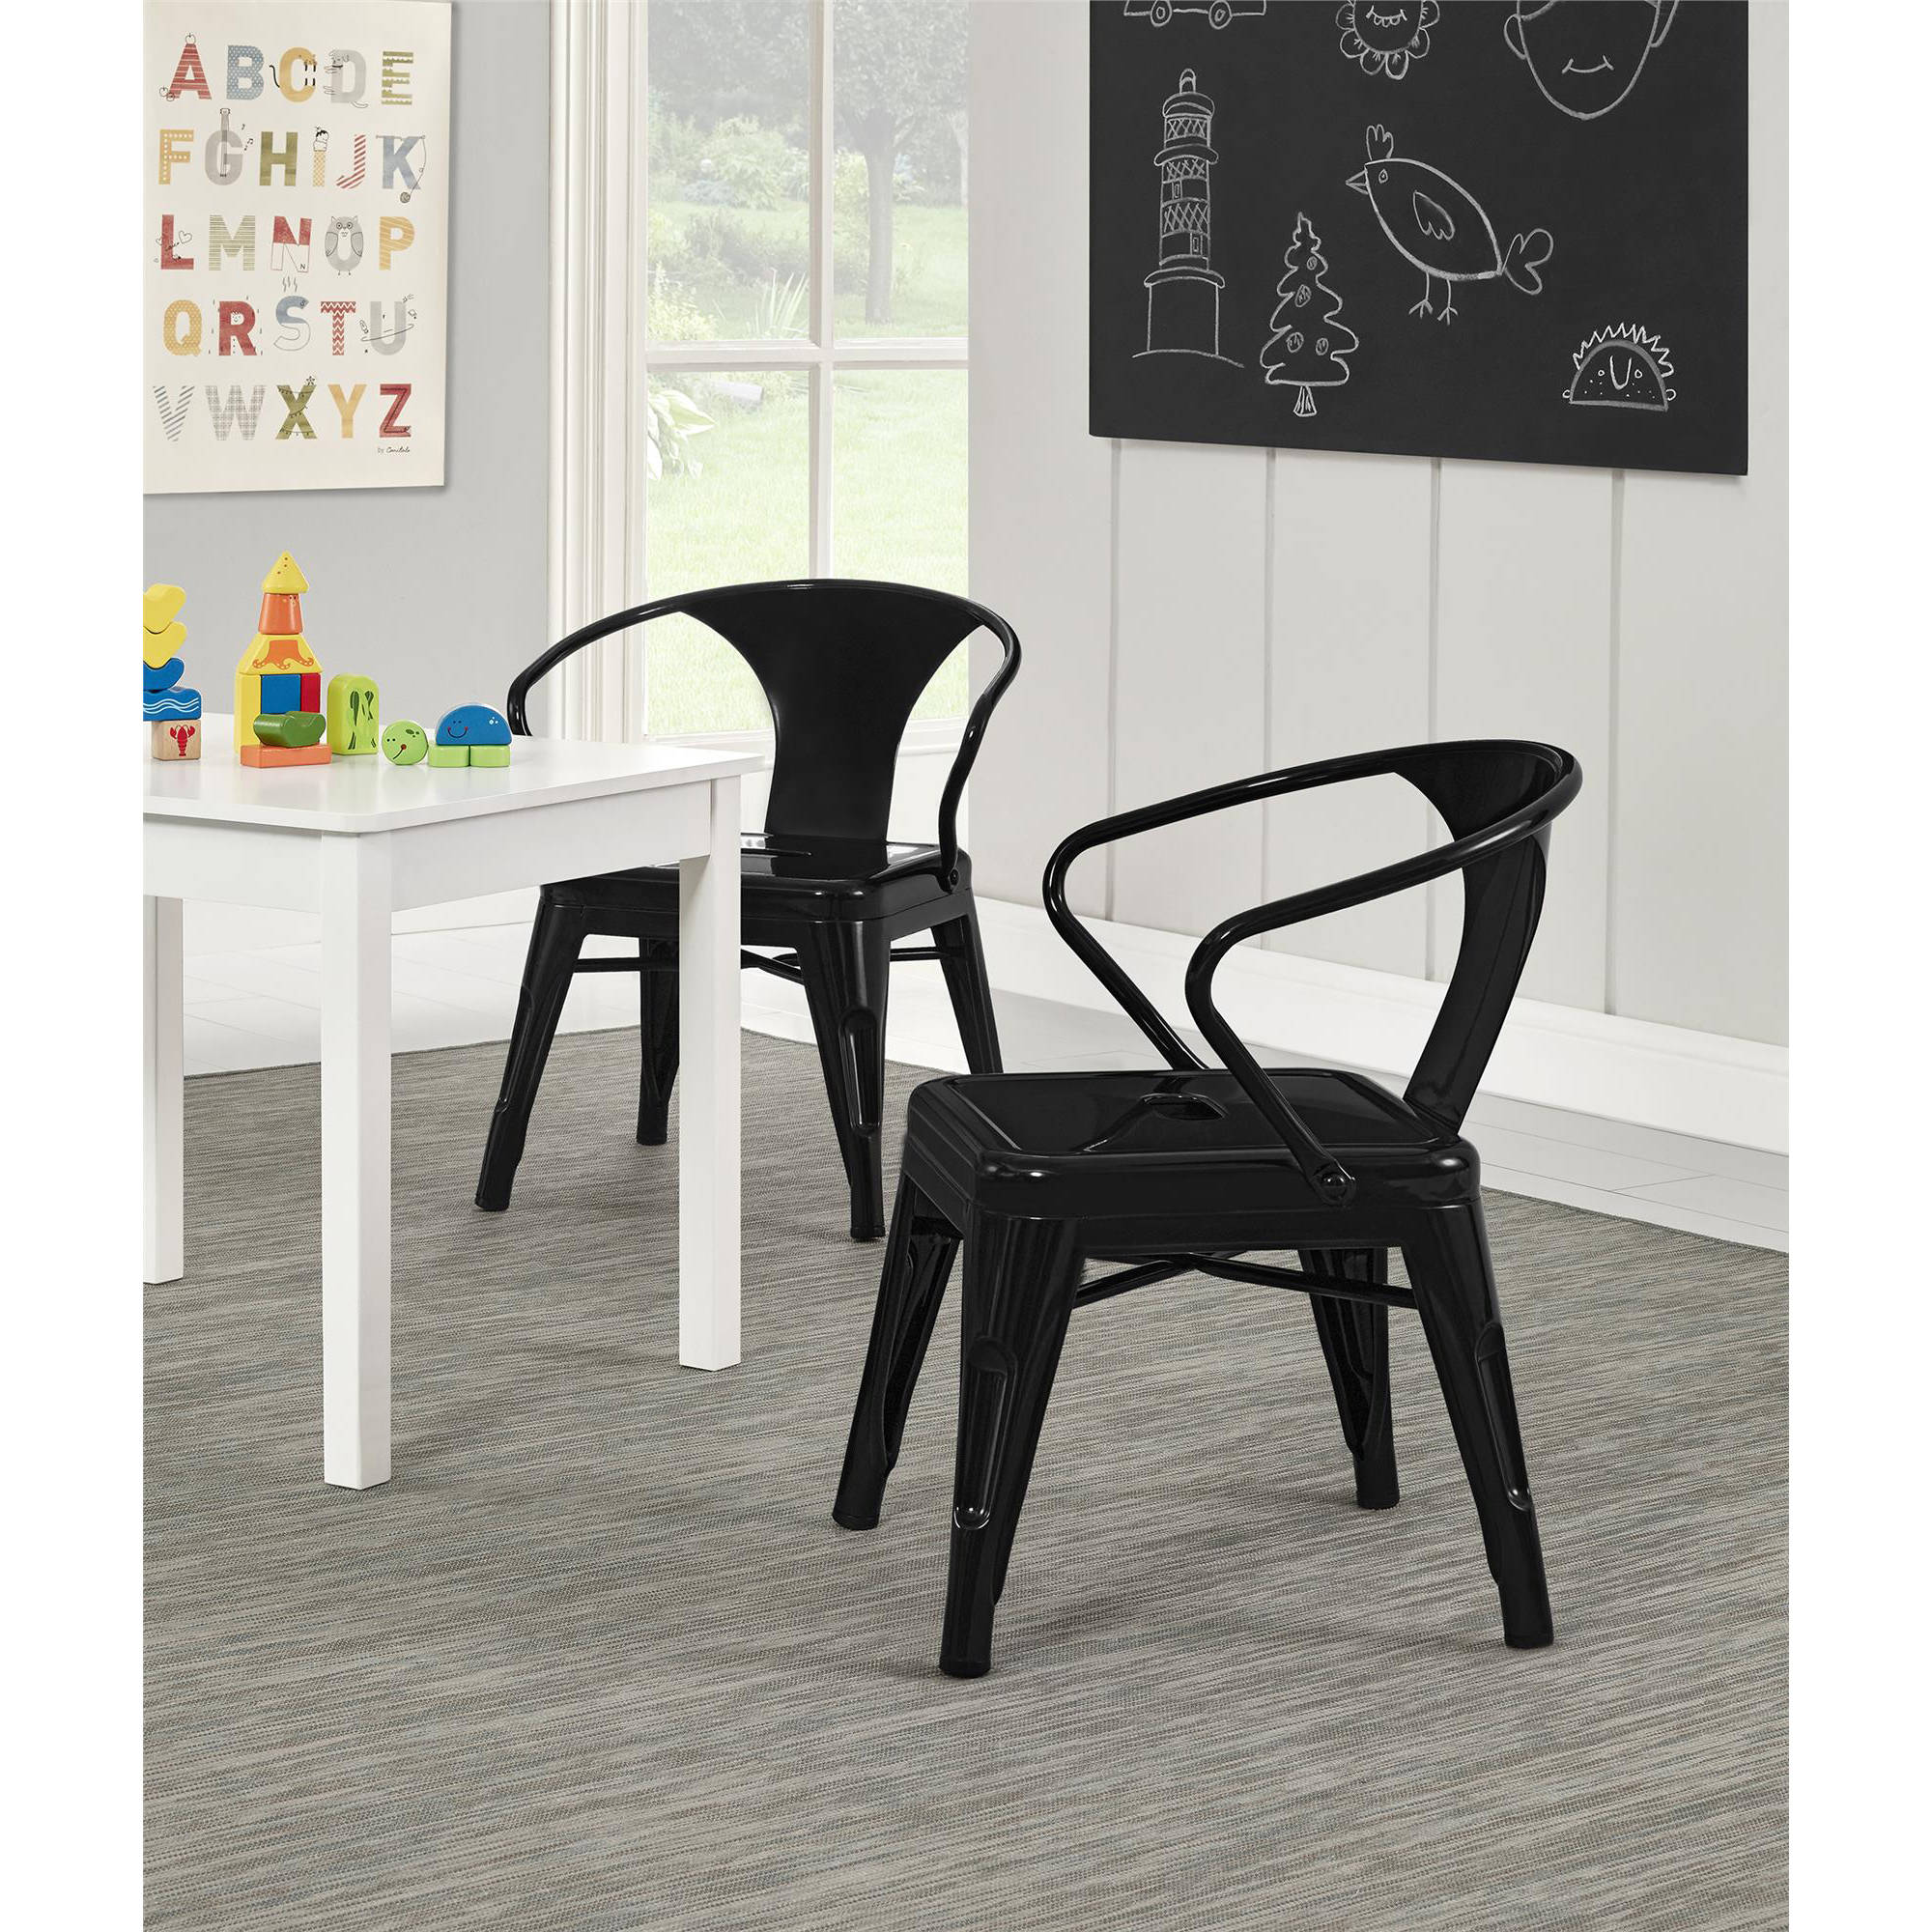 Better Homes and Gardens Metal Kids Chair Set of 2 Multiple Colors - Walmart.com  sc 1 st  Walmart & Better Homes and Gardens Metal Kids Chair Set of 2 Multiple Colors ...